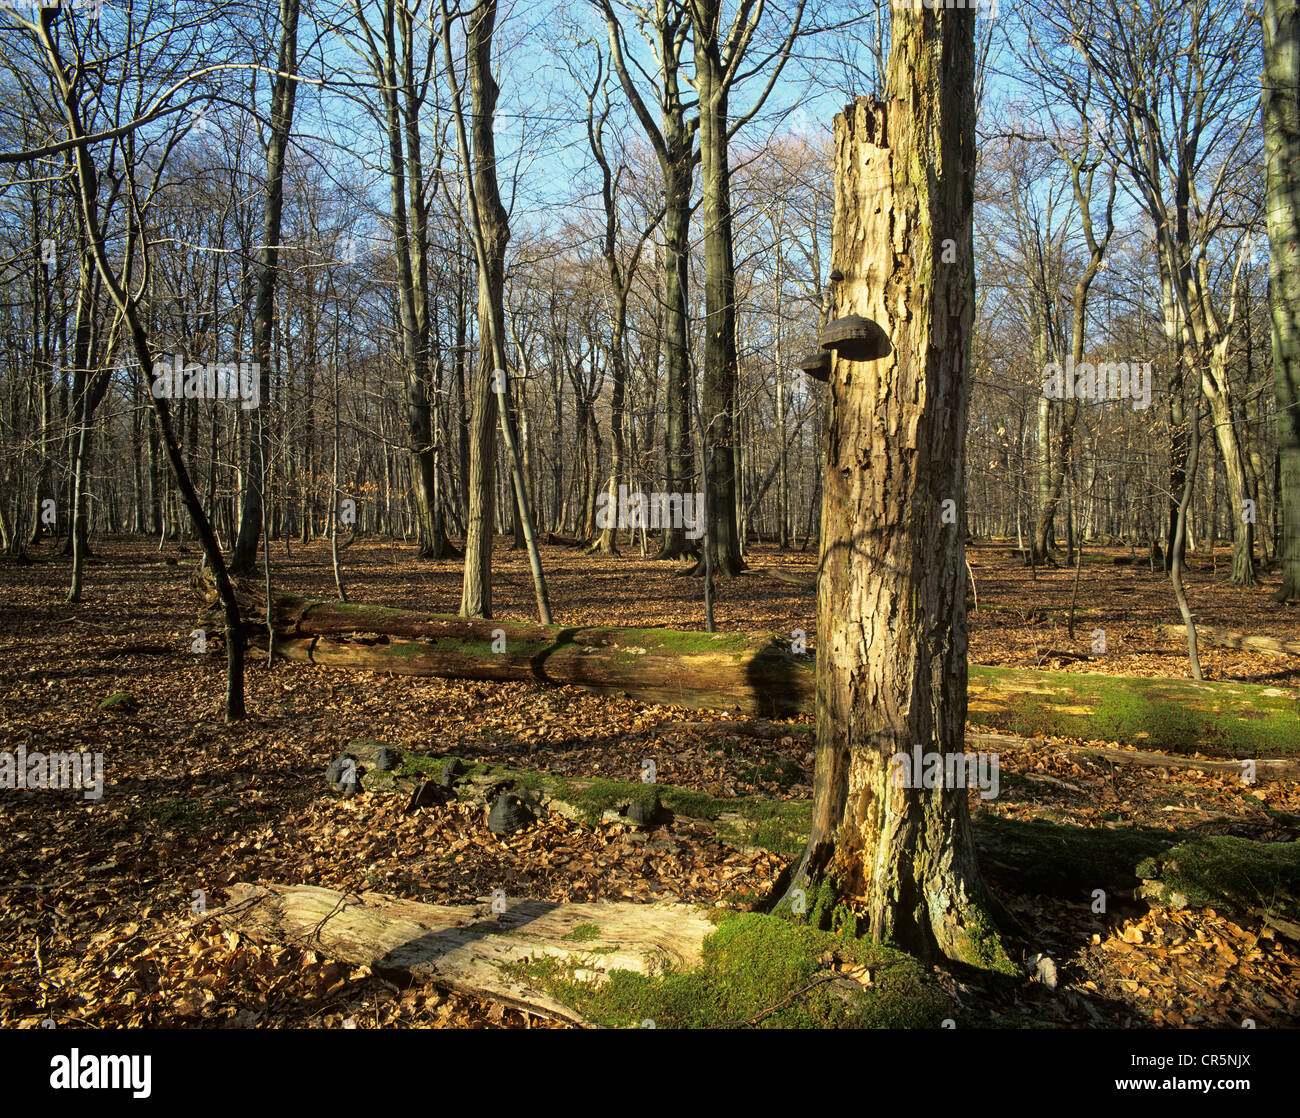 Deadwood, on ground and standing upright, UNESCO World Natural Heritage Site, Thuringia, Germany, Europe - Stock Image